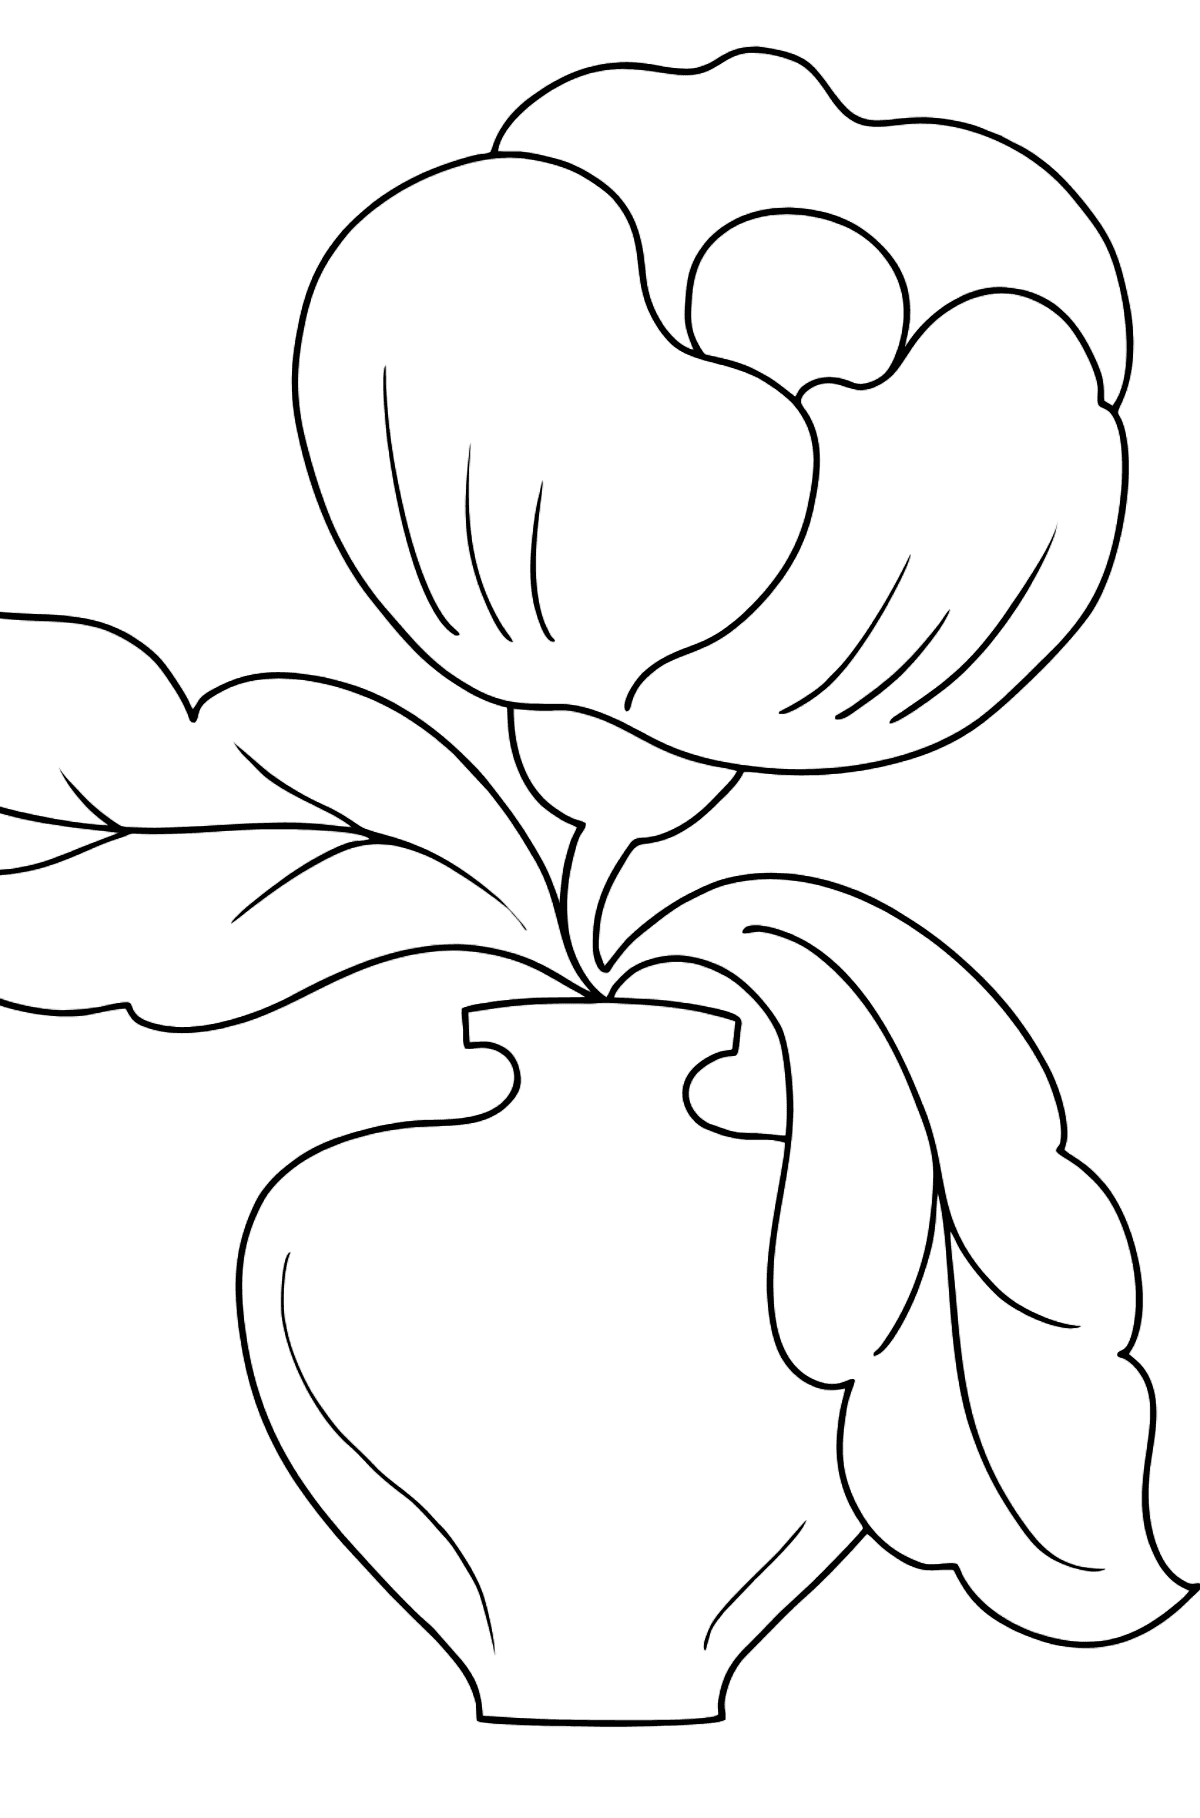 Coloring Page - flowers in a vase - Coloring Pages for Kids